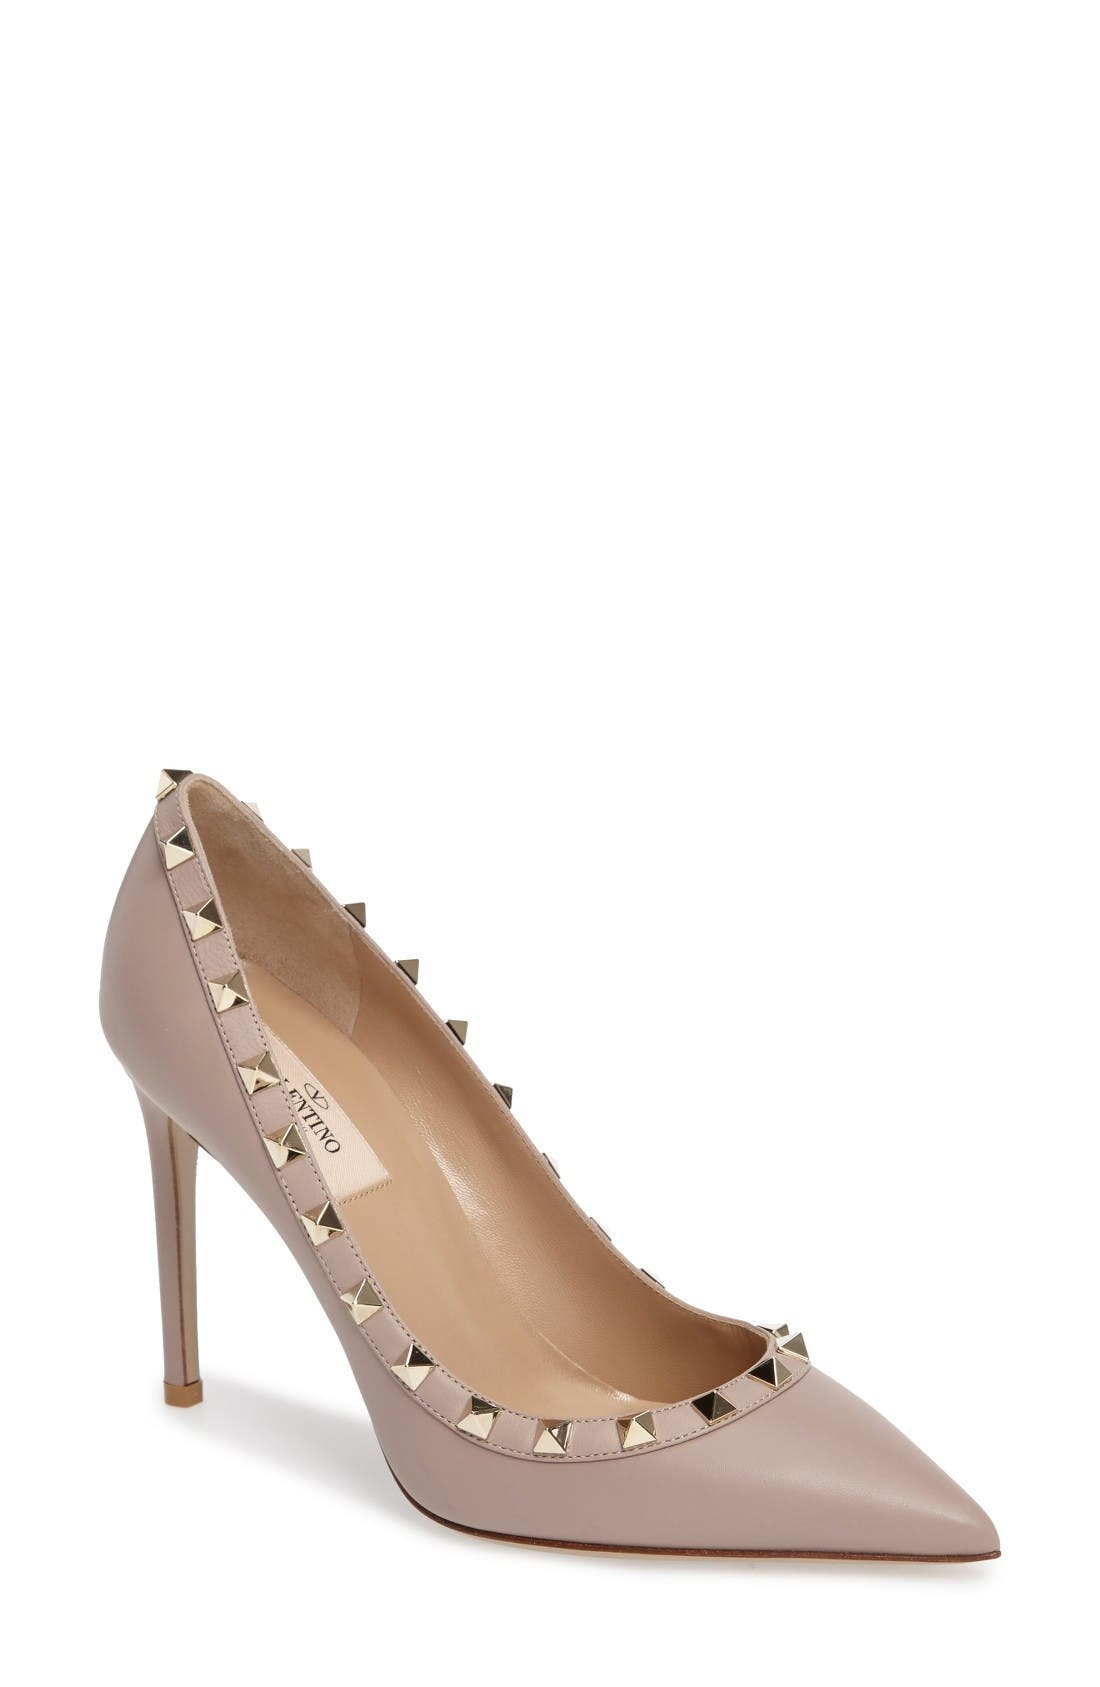 VALENTINO GARAVANI Rockstud Pointed Pump (Women)